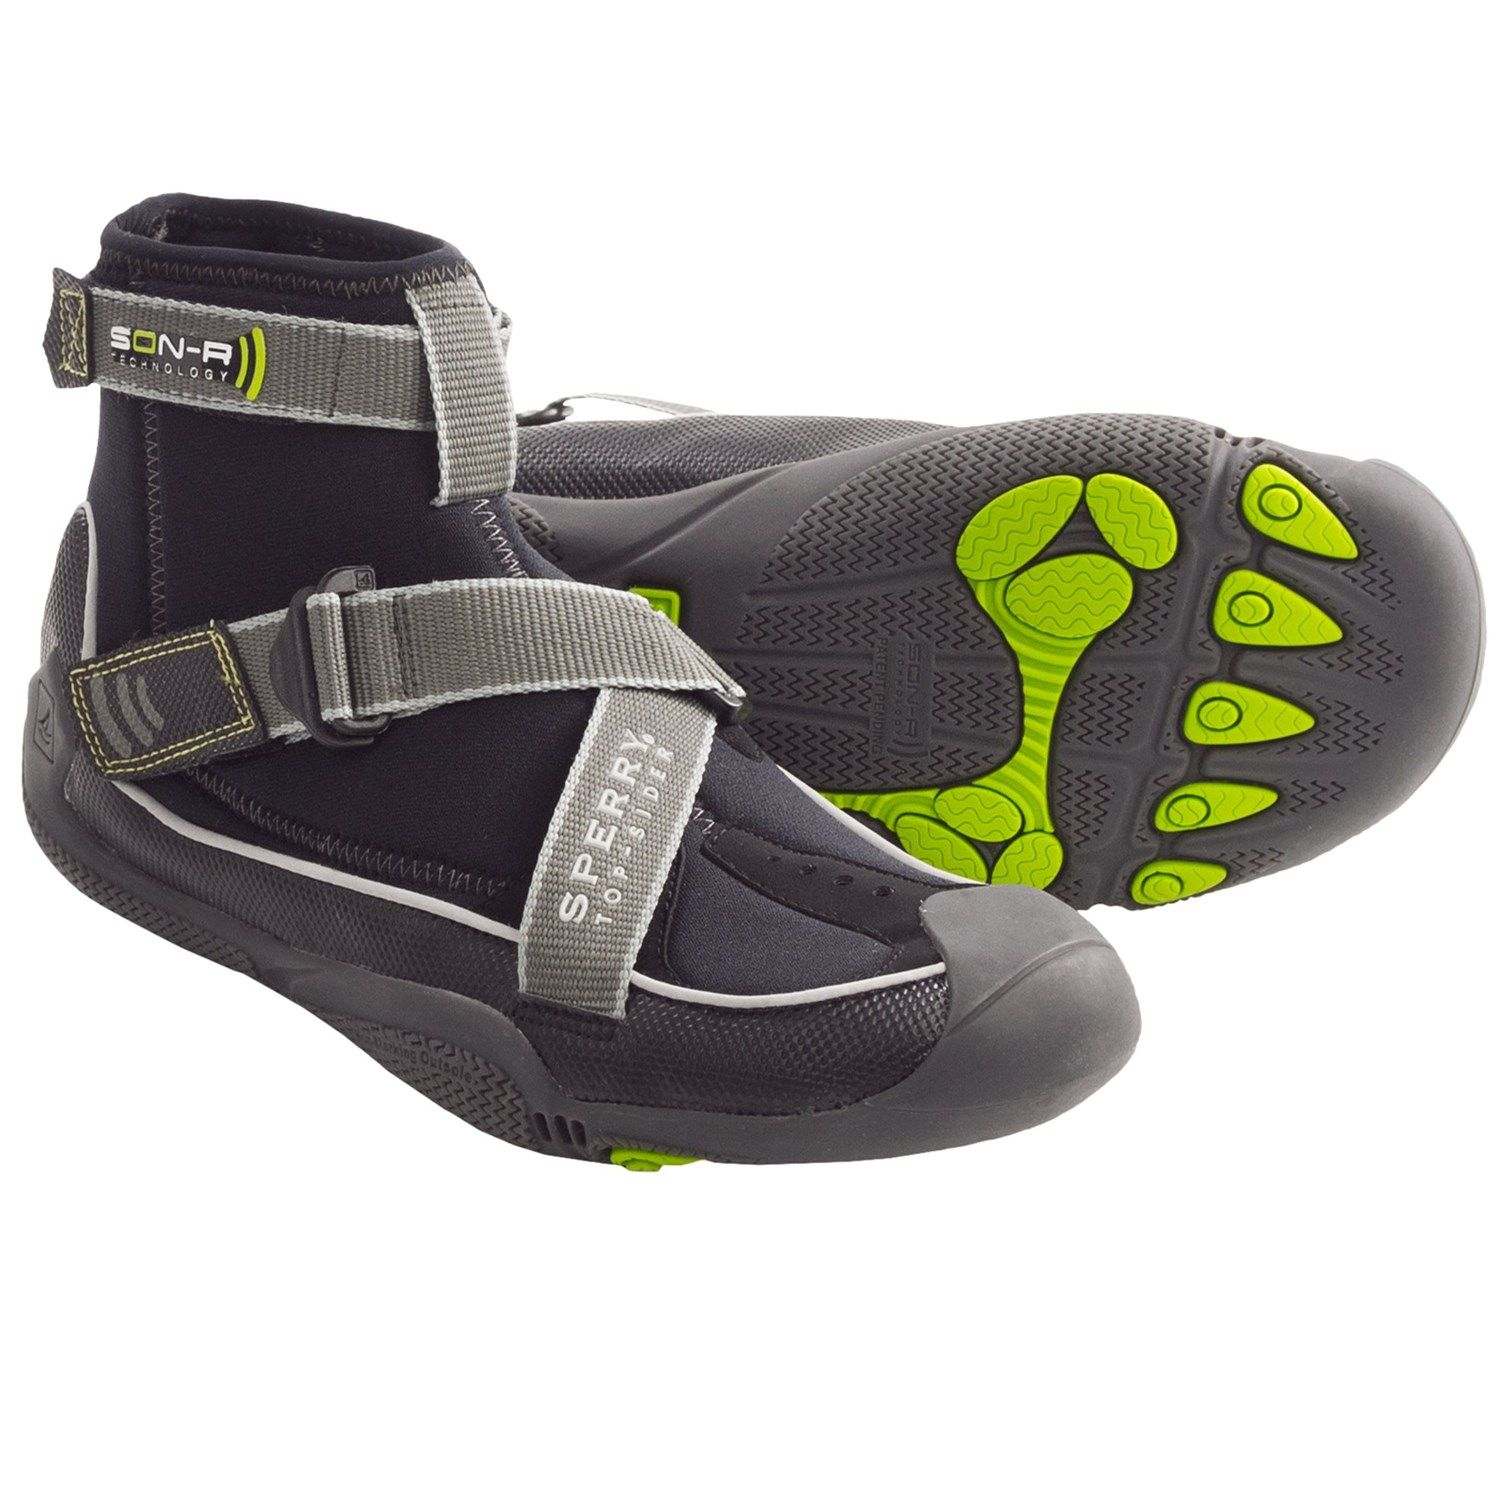 Sperry SON-R Bearing Water Shoes (For